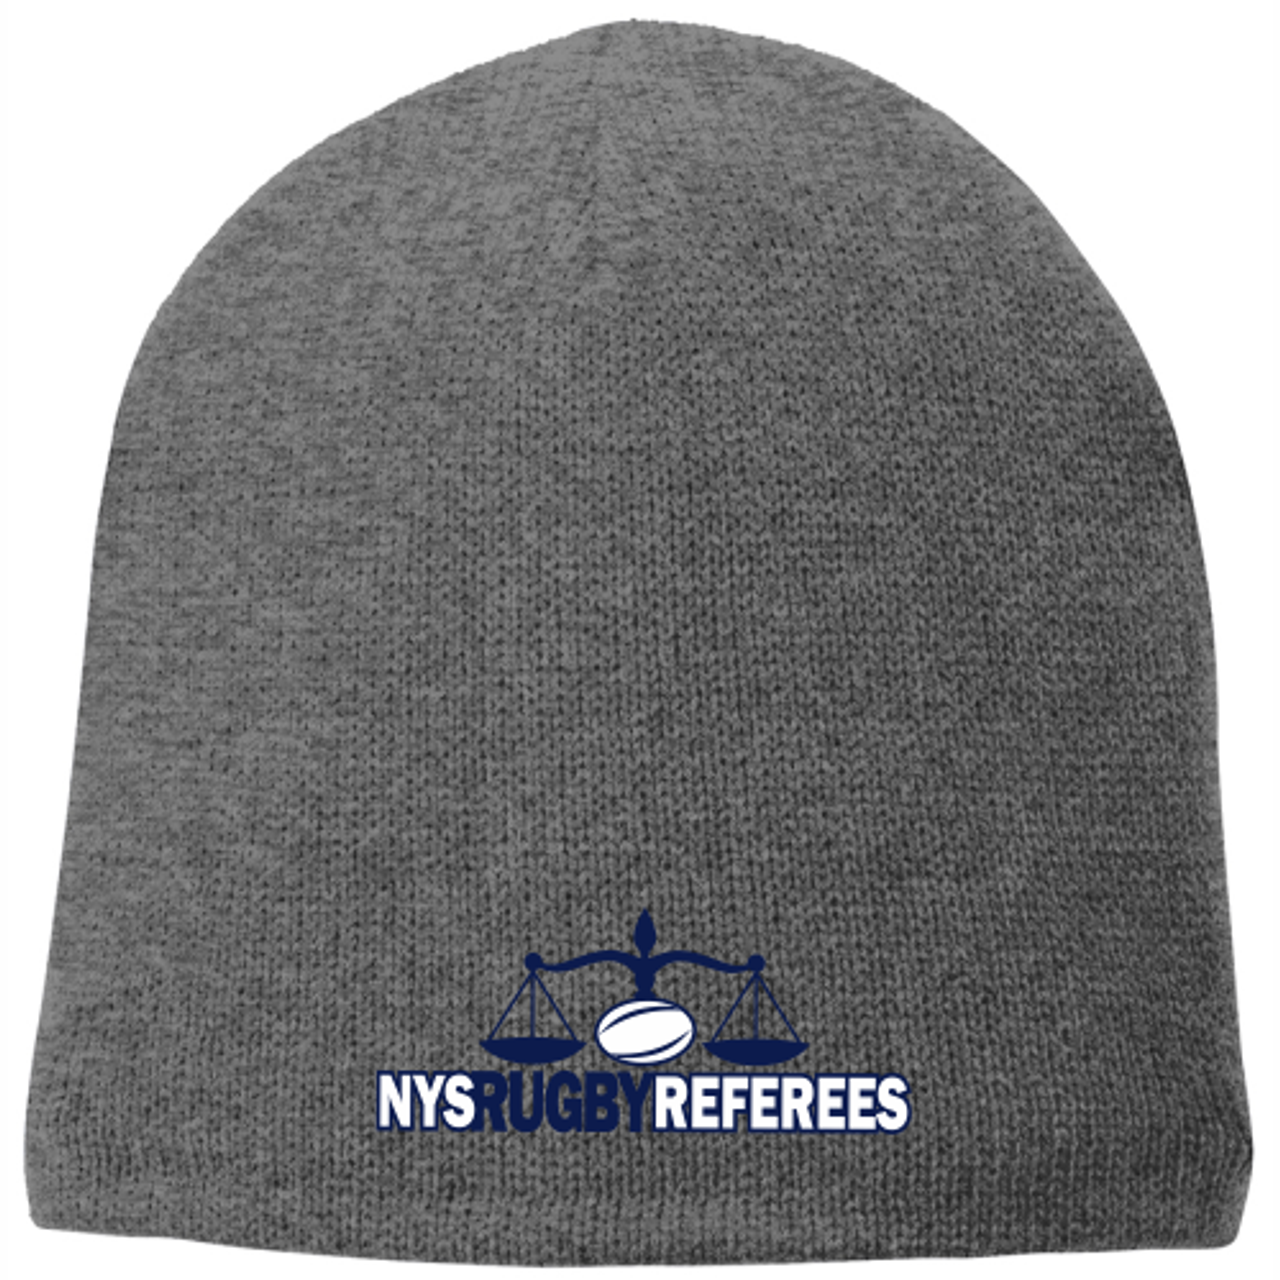 NYSRRS Fleece-Lined Beanie, Gray